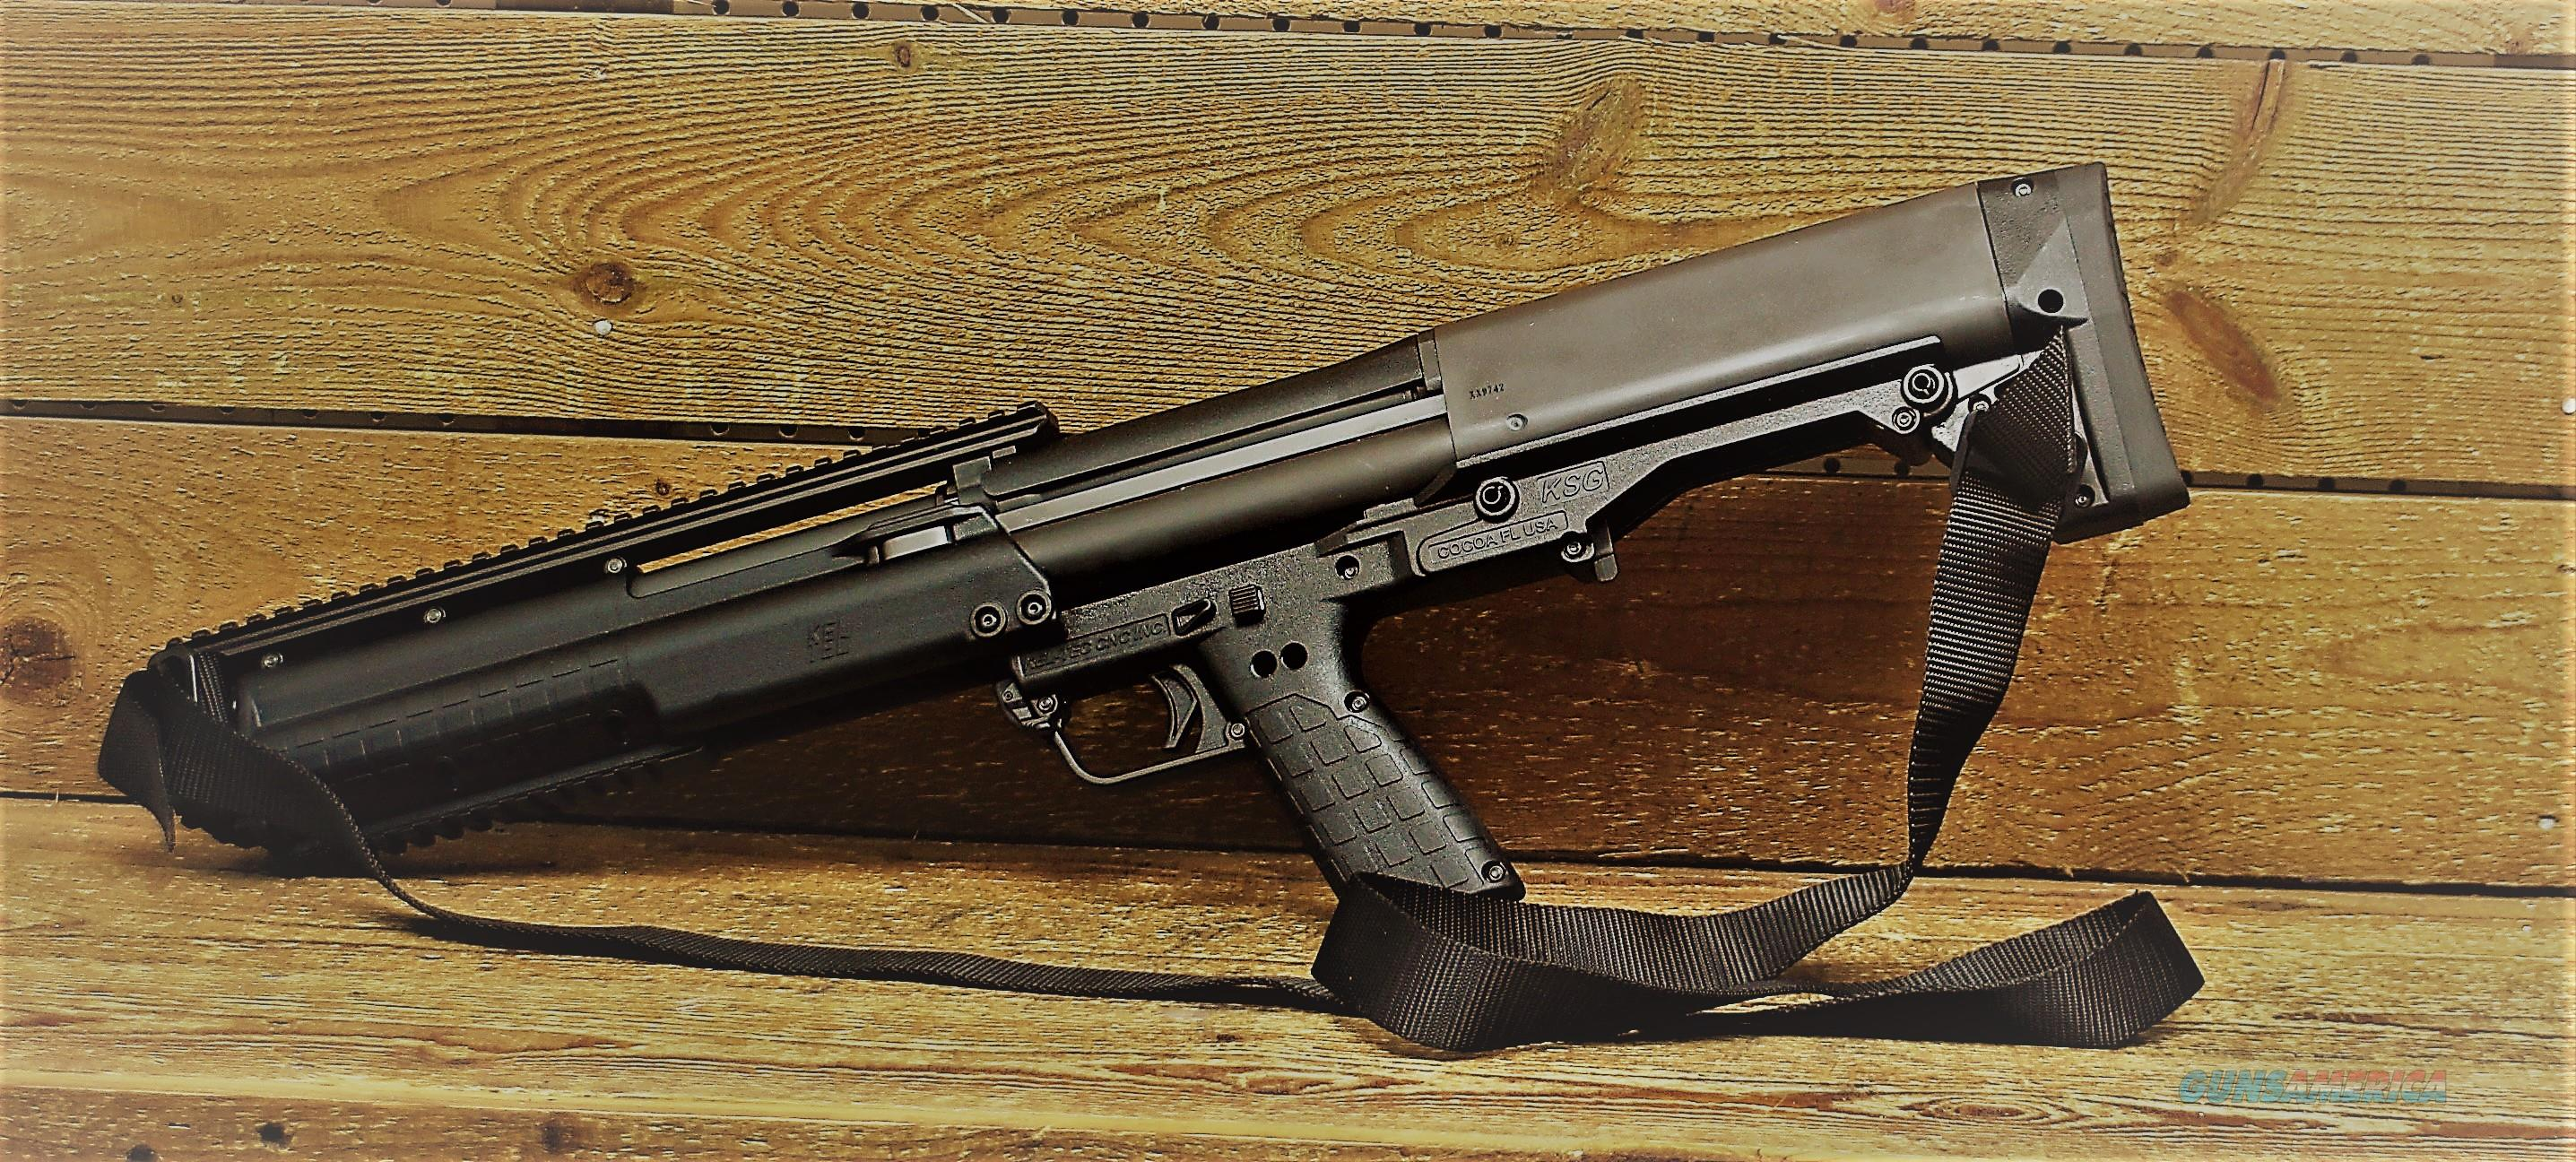 "EASY PAY  $71 LAYAWAY  12 Gauge Kel-Tec KSG Pump Action Shotgun 18.5"" Barrel 2-3/4"" Chamber 14 Rounds Black Synthetic Stockshape and design are similar to the  Kel-Tec RFB   Guns > Shotguns > Kel-Tec Shotguns > KSG"